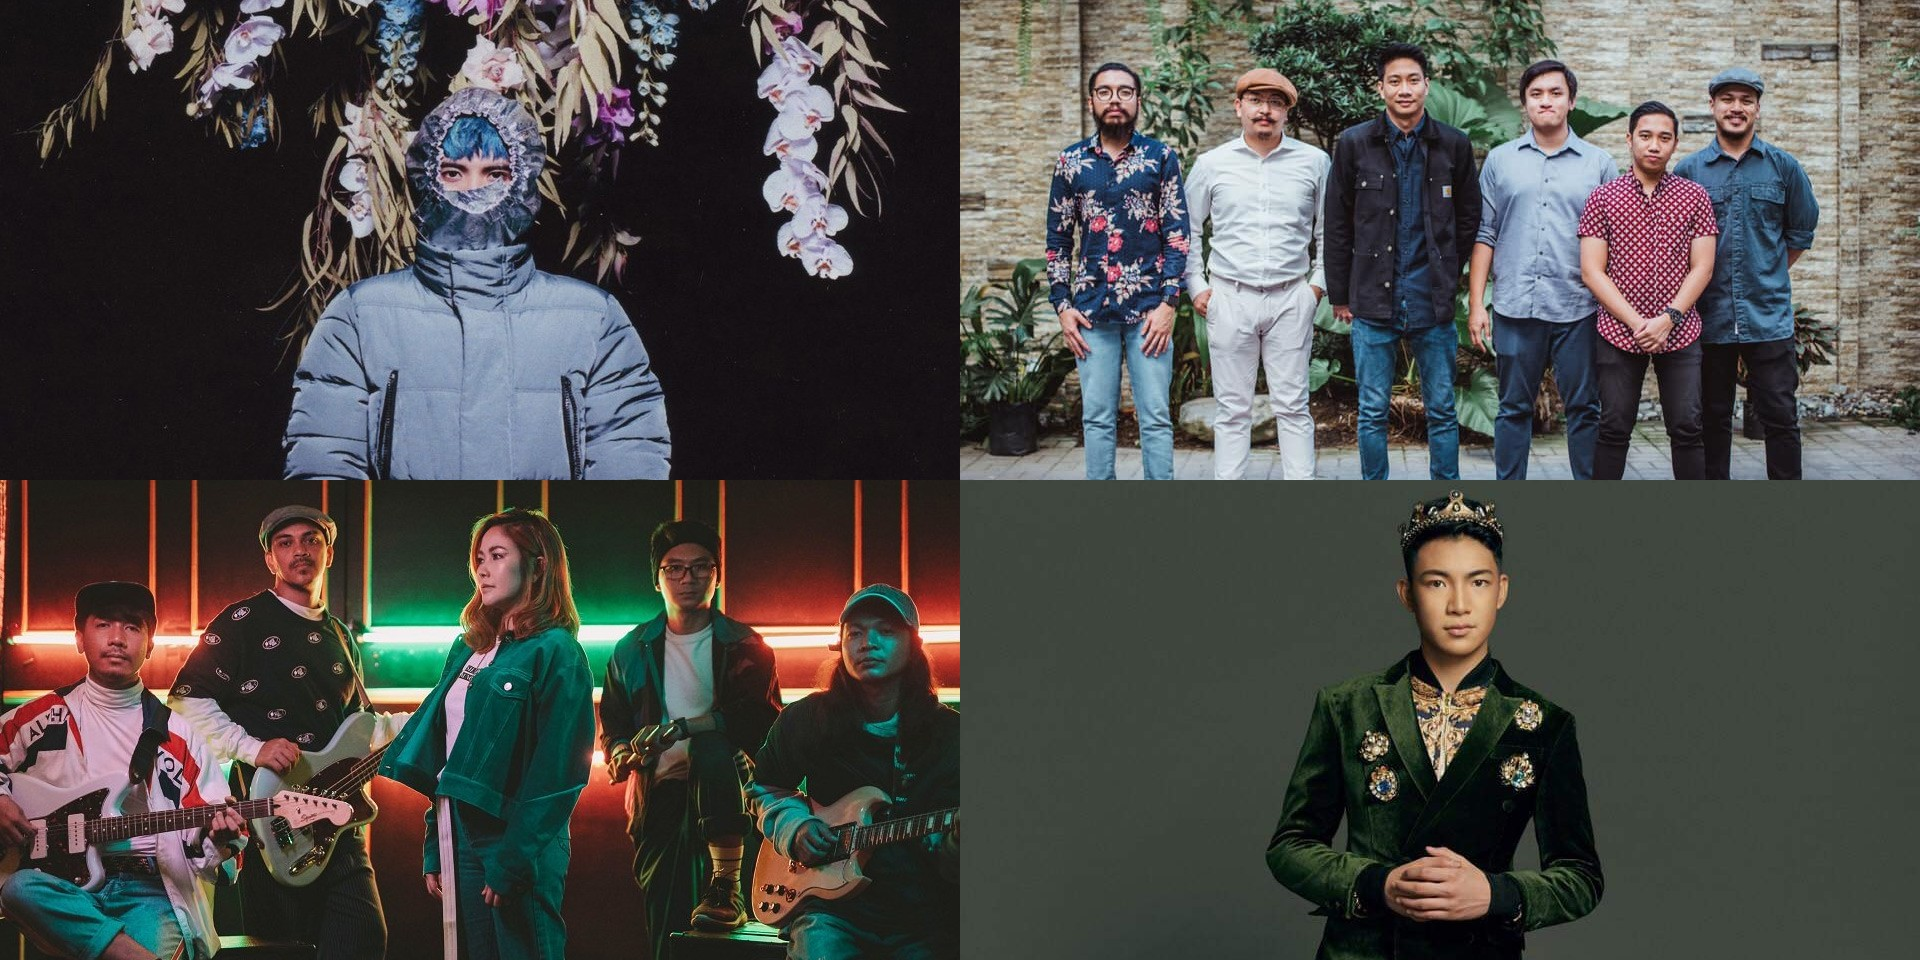 No Rome, Lions & Acrobats, Yeng Constantino, Darren Espanto, and more release new music